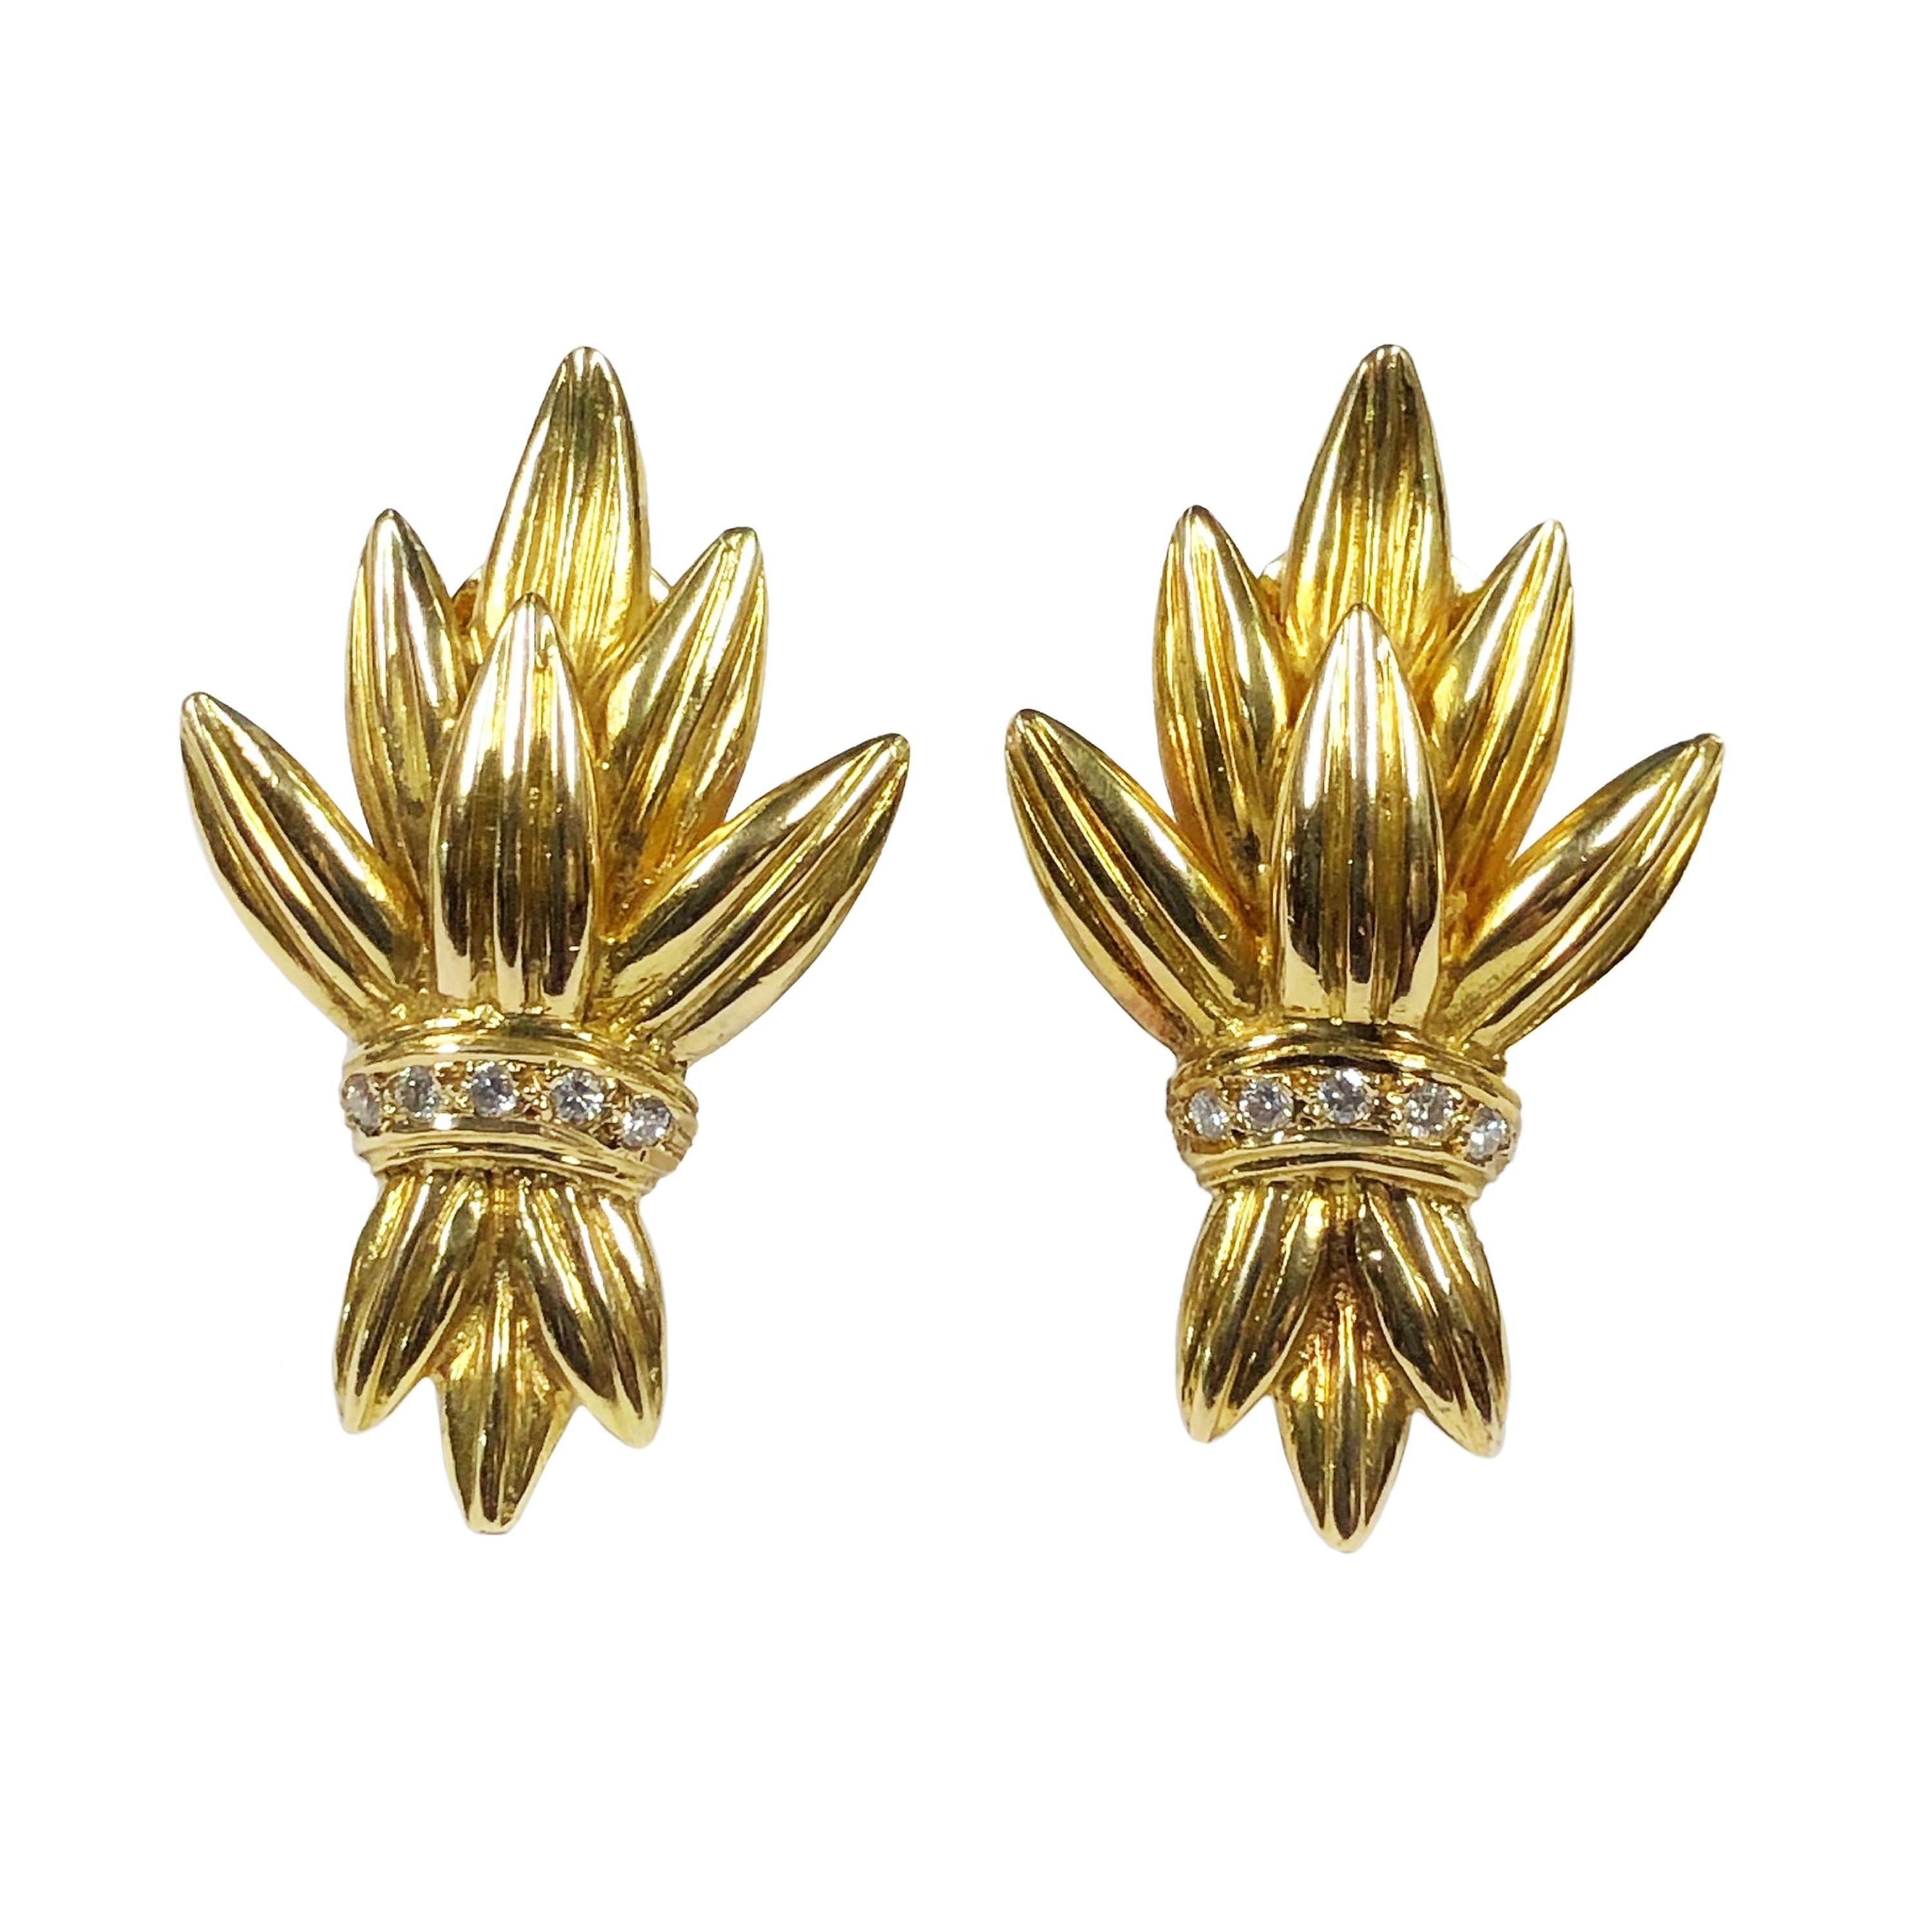 Lalaounis Yellow Gold and Diamond Earrings